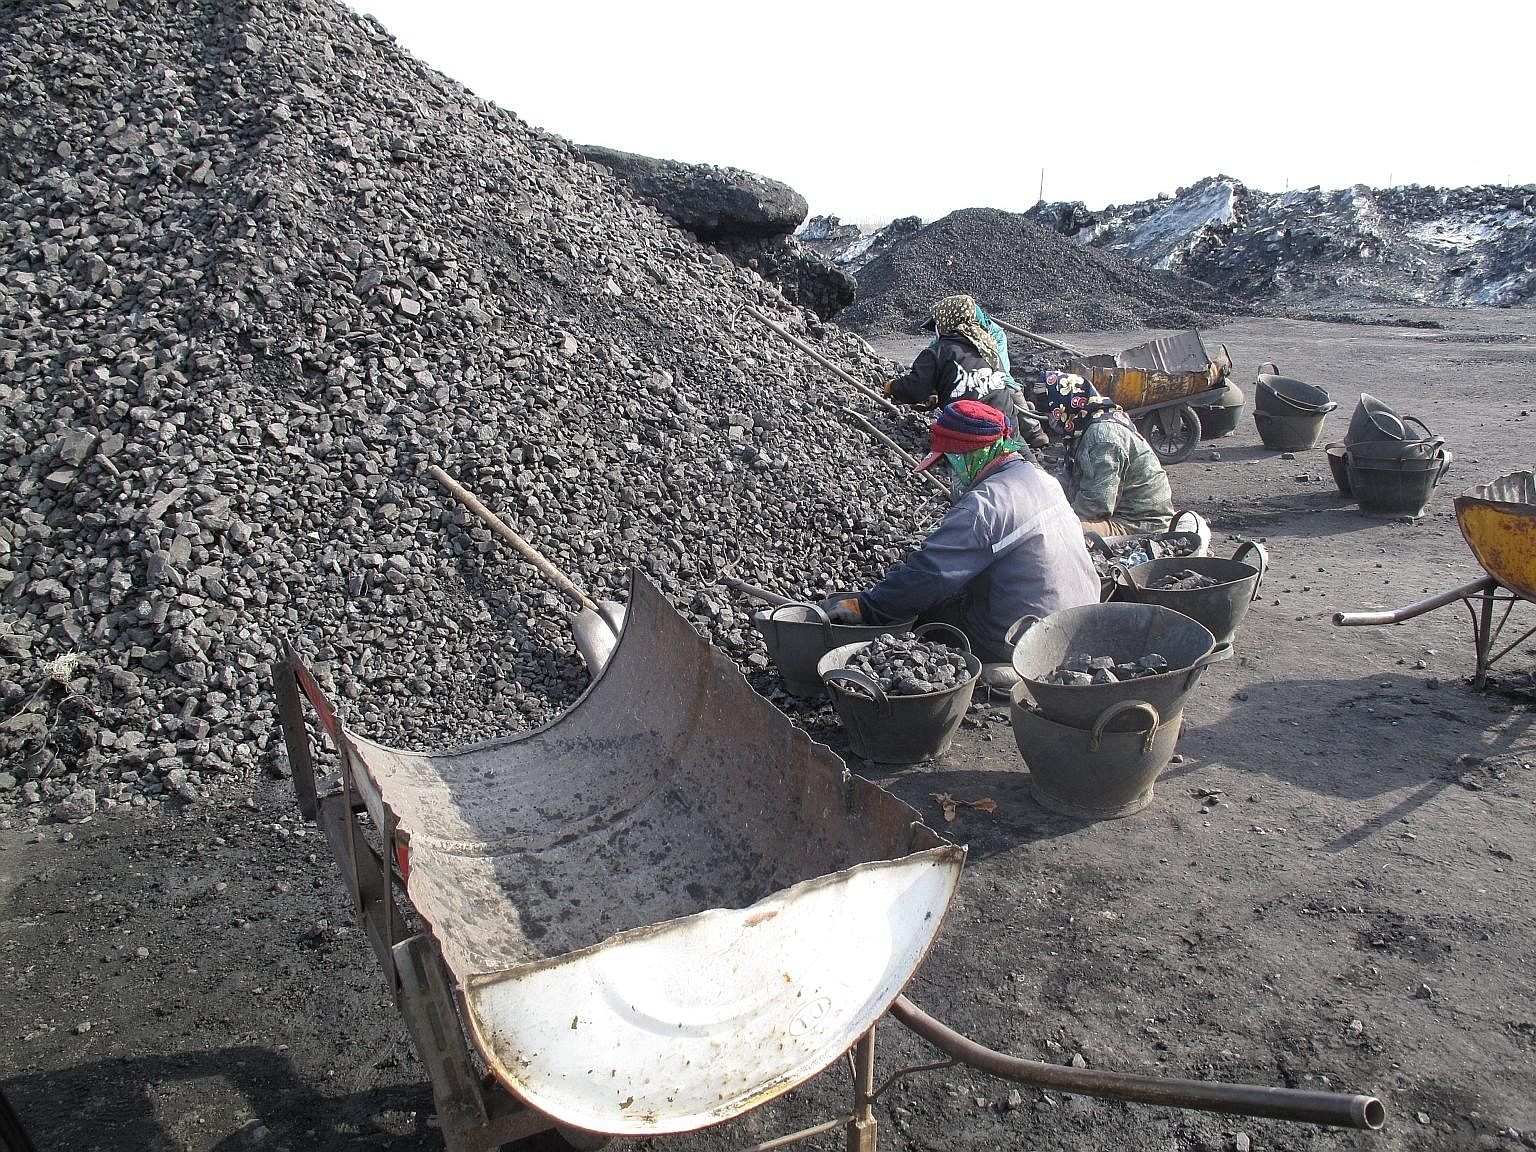 Workers at a mine owned by Longmay Mining Group in Shuangyashan, Heilongjiang province. Thousands of Longmay miners who said they had not been paid took to the streets earlier this month after the Heilongjiang governor told reporters that no miner wo